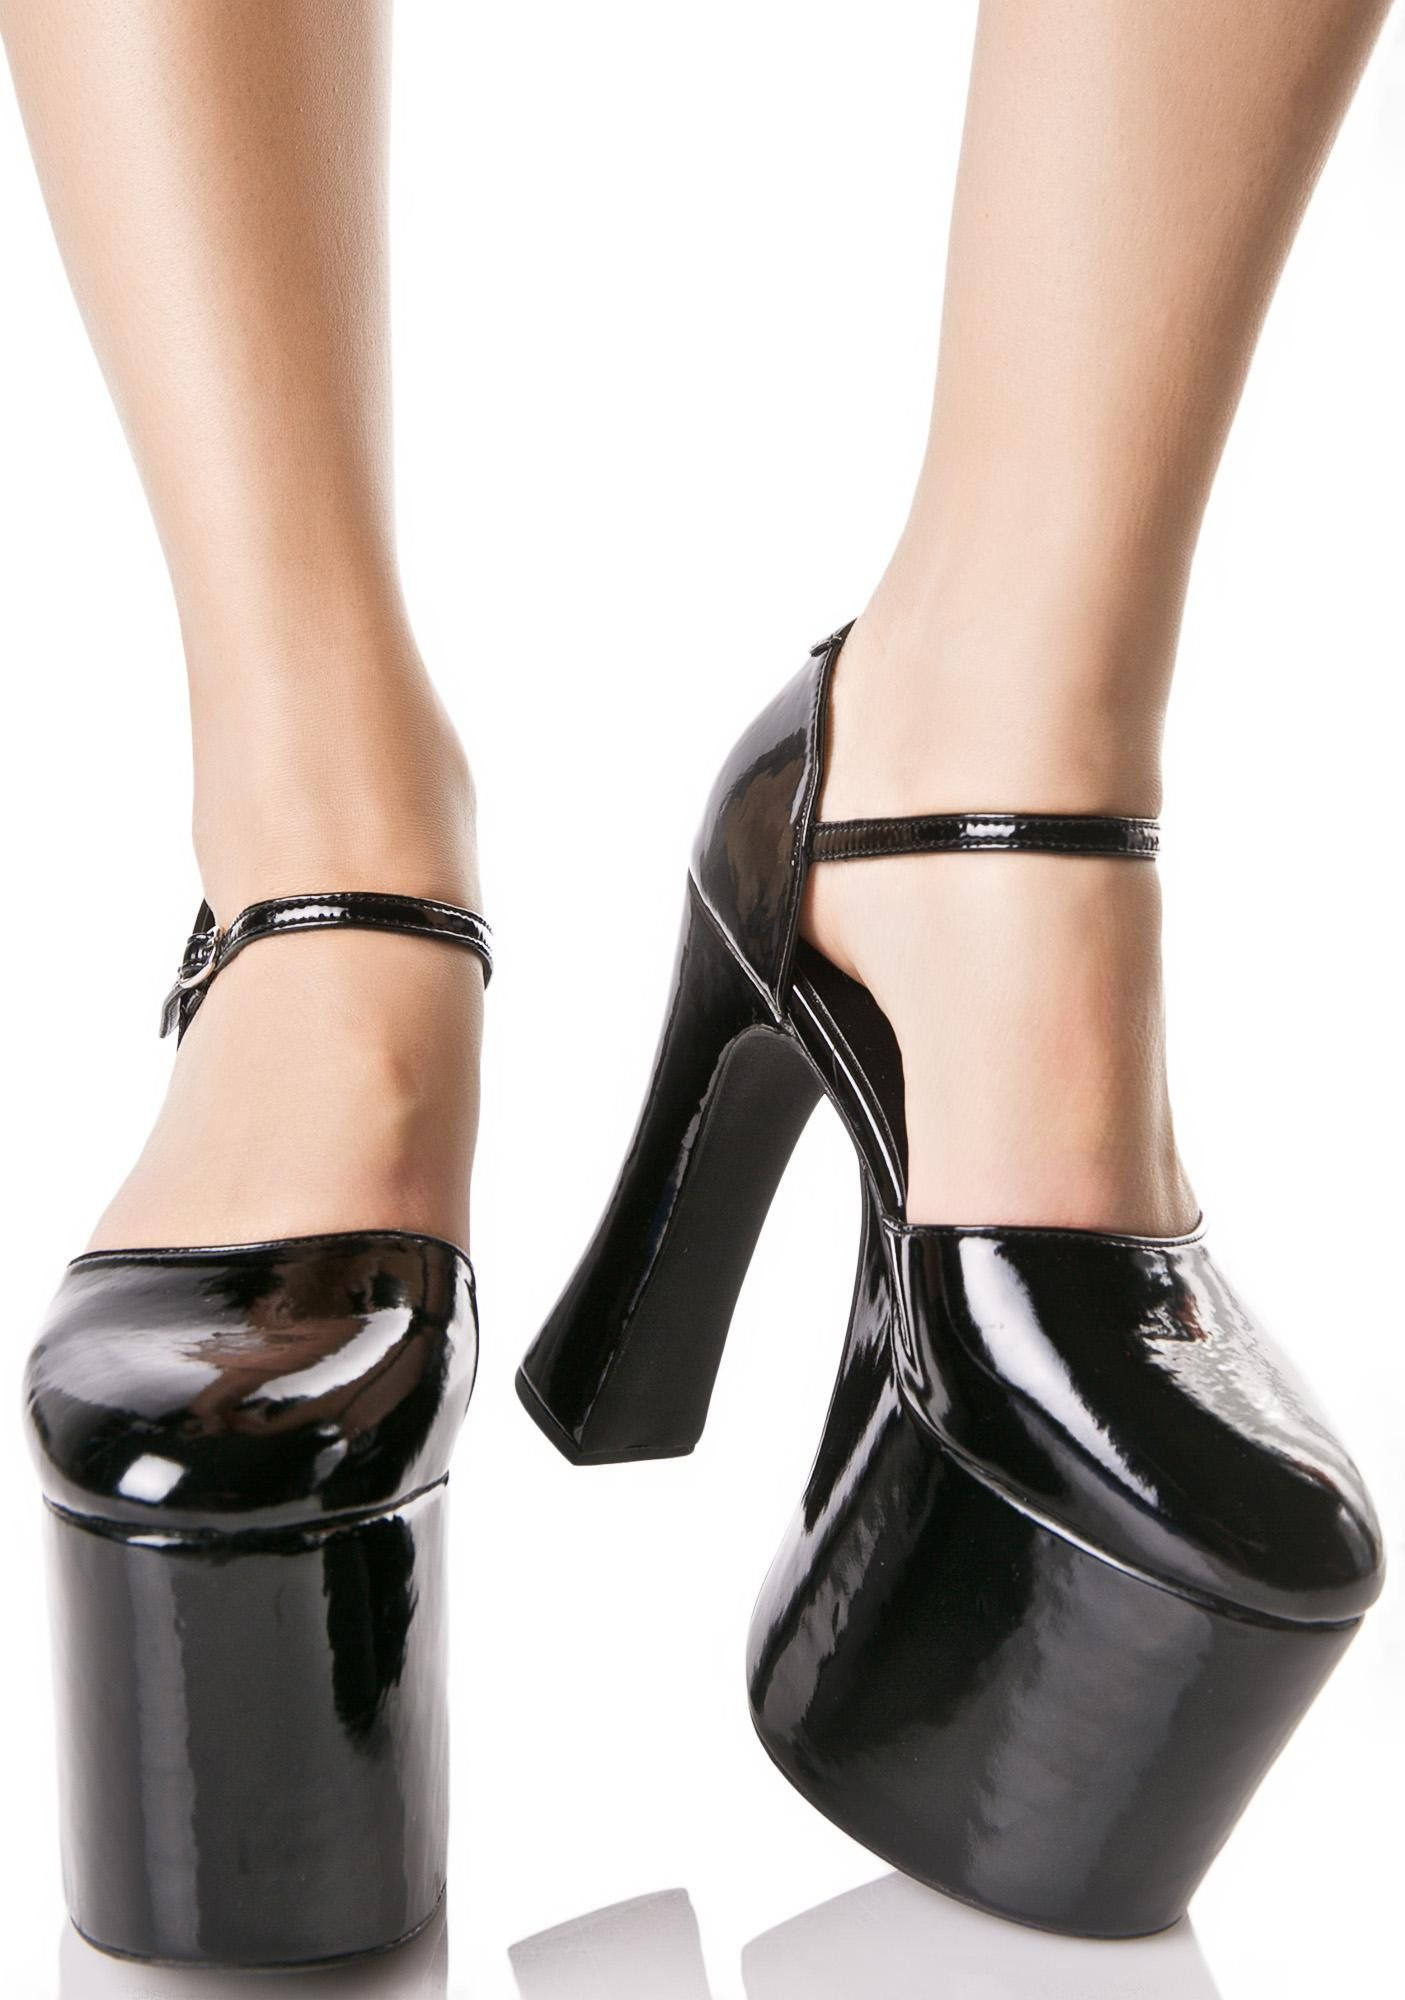 Current Mood Dita Platforms are gonna put on a seductive show. Get a front row view in these stunning platforms that feature a glossy patent construction with rounded toes, open sides, extreme platforms and a buckle ankle strap closure.